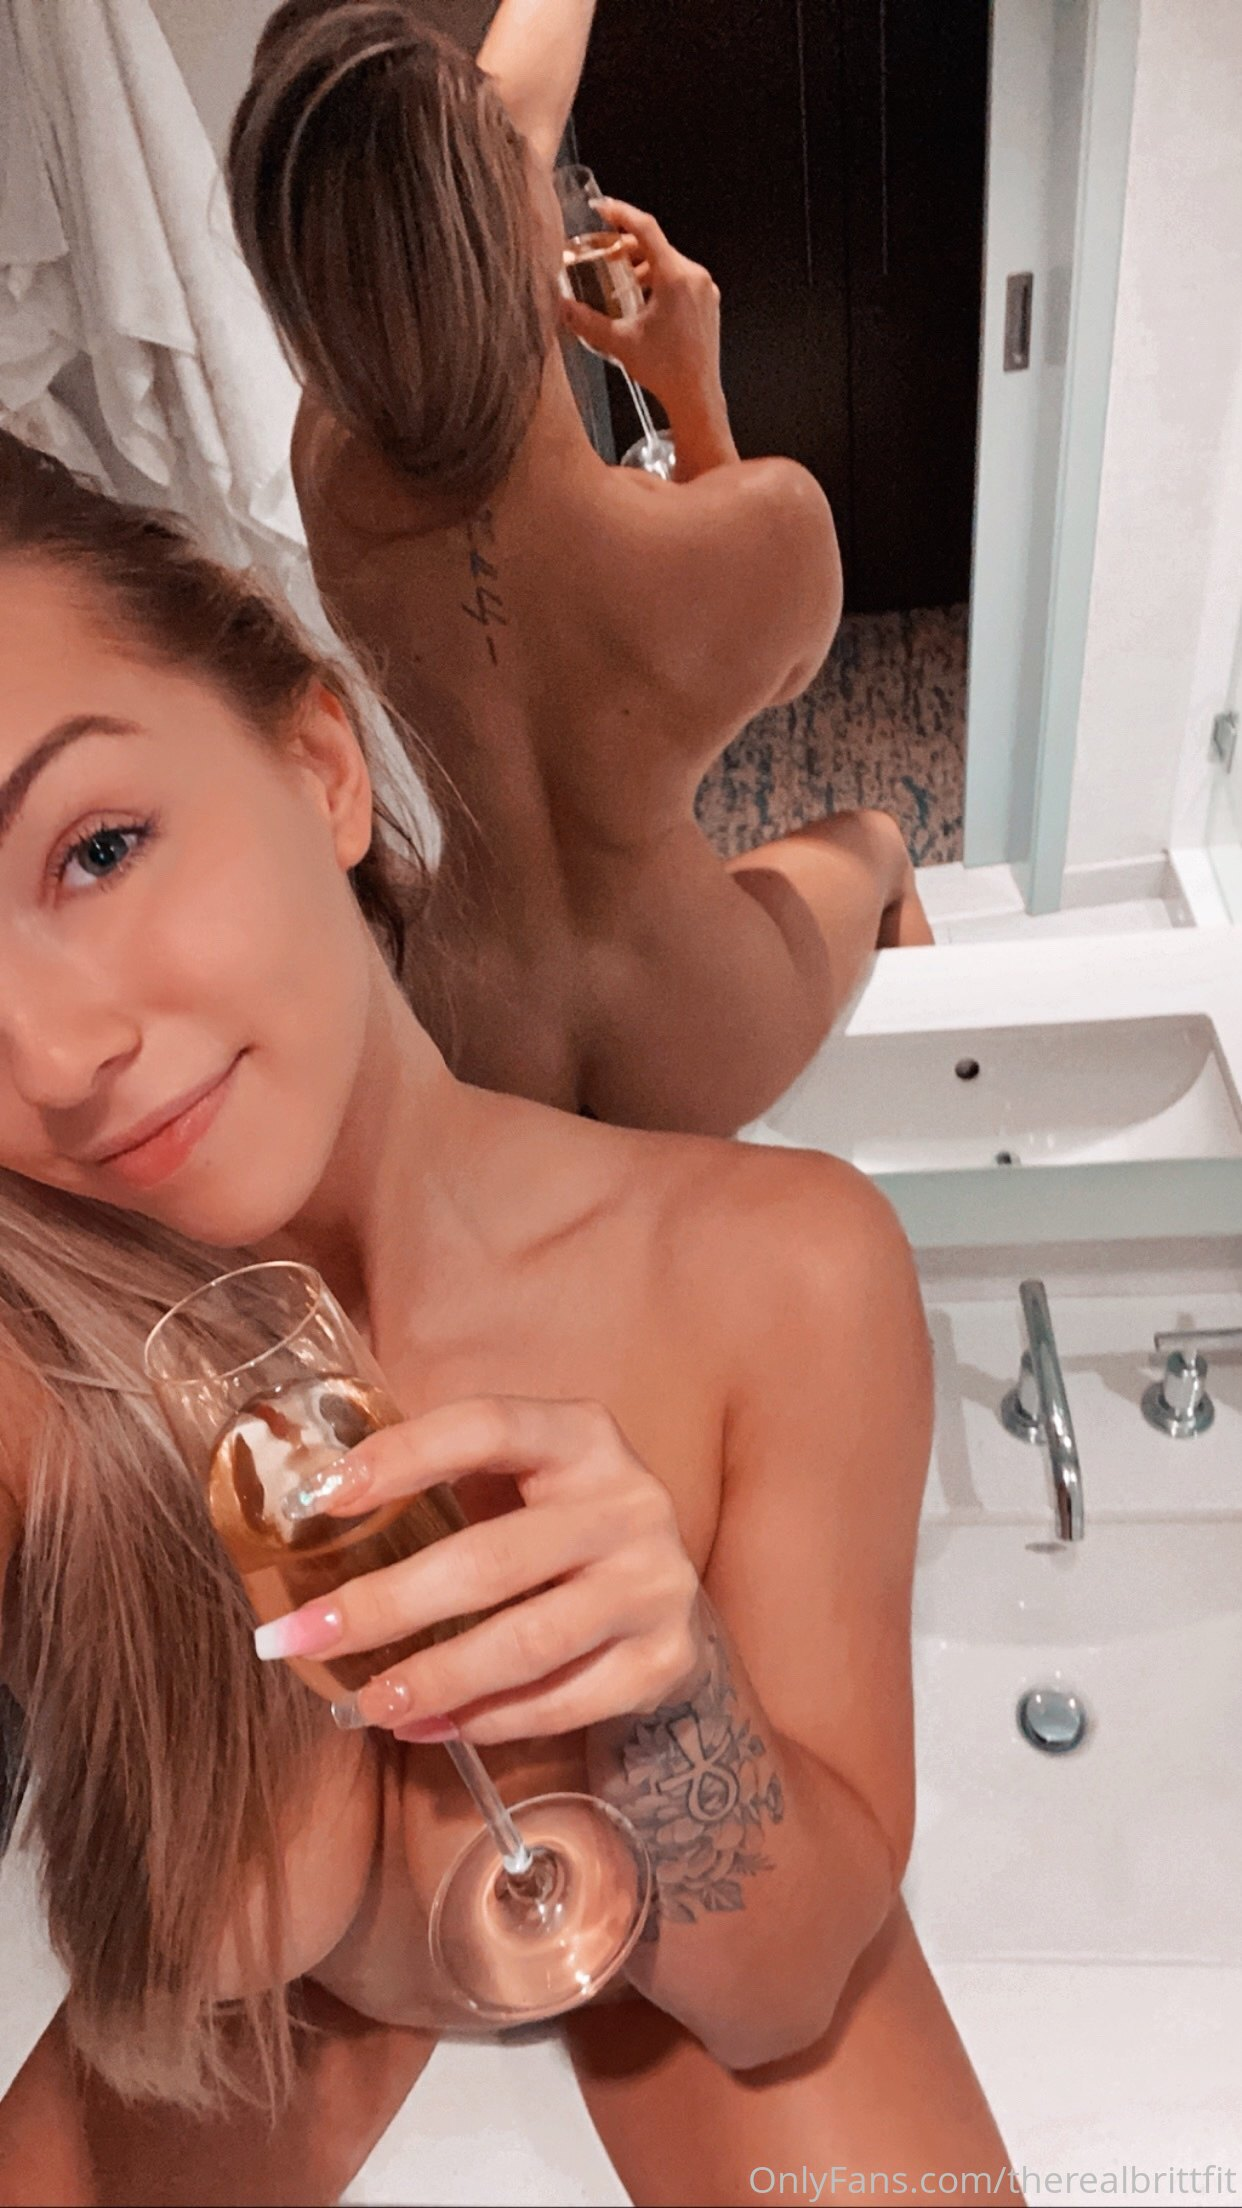 Therealbrittfit Nude Onlyfans Leaked 0012